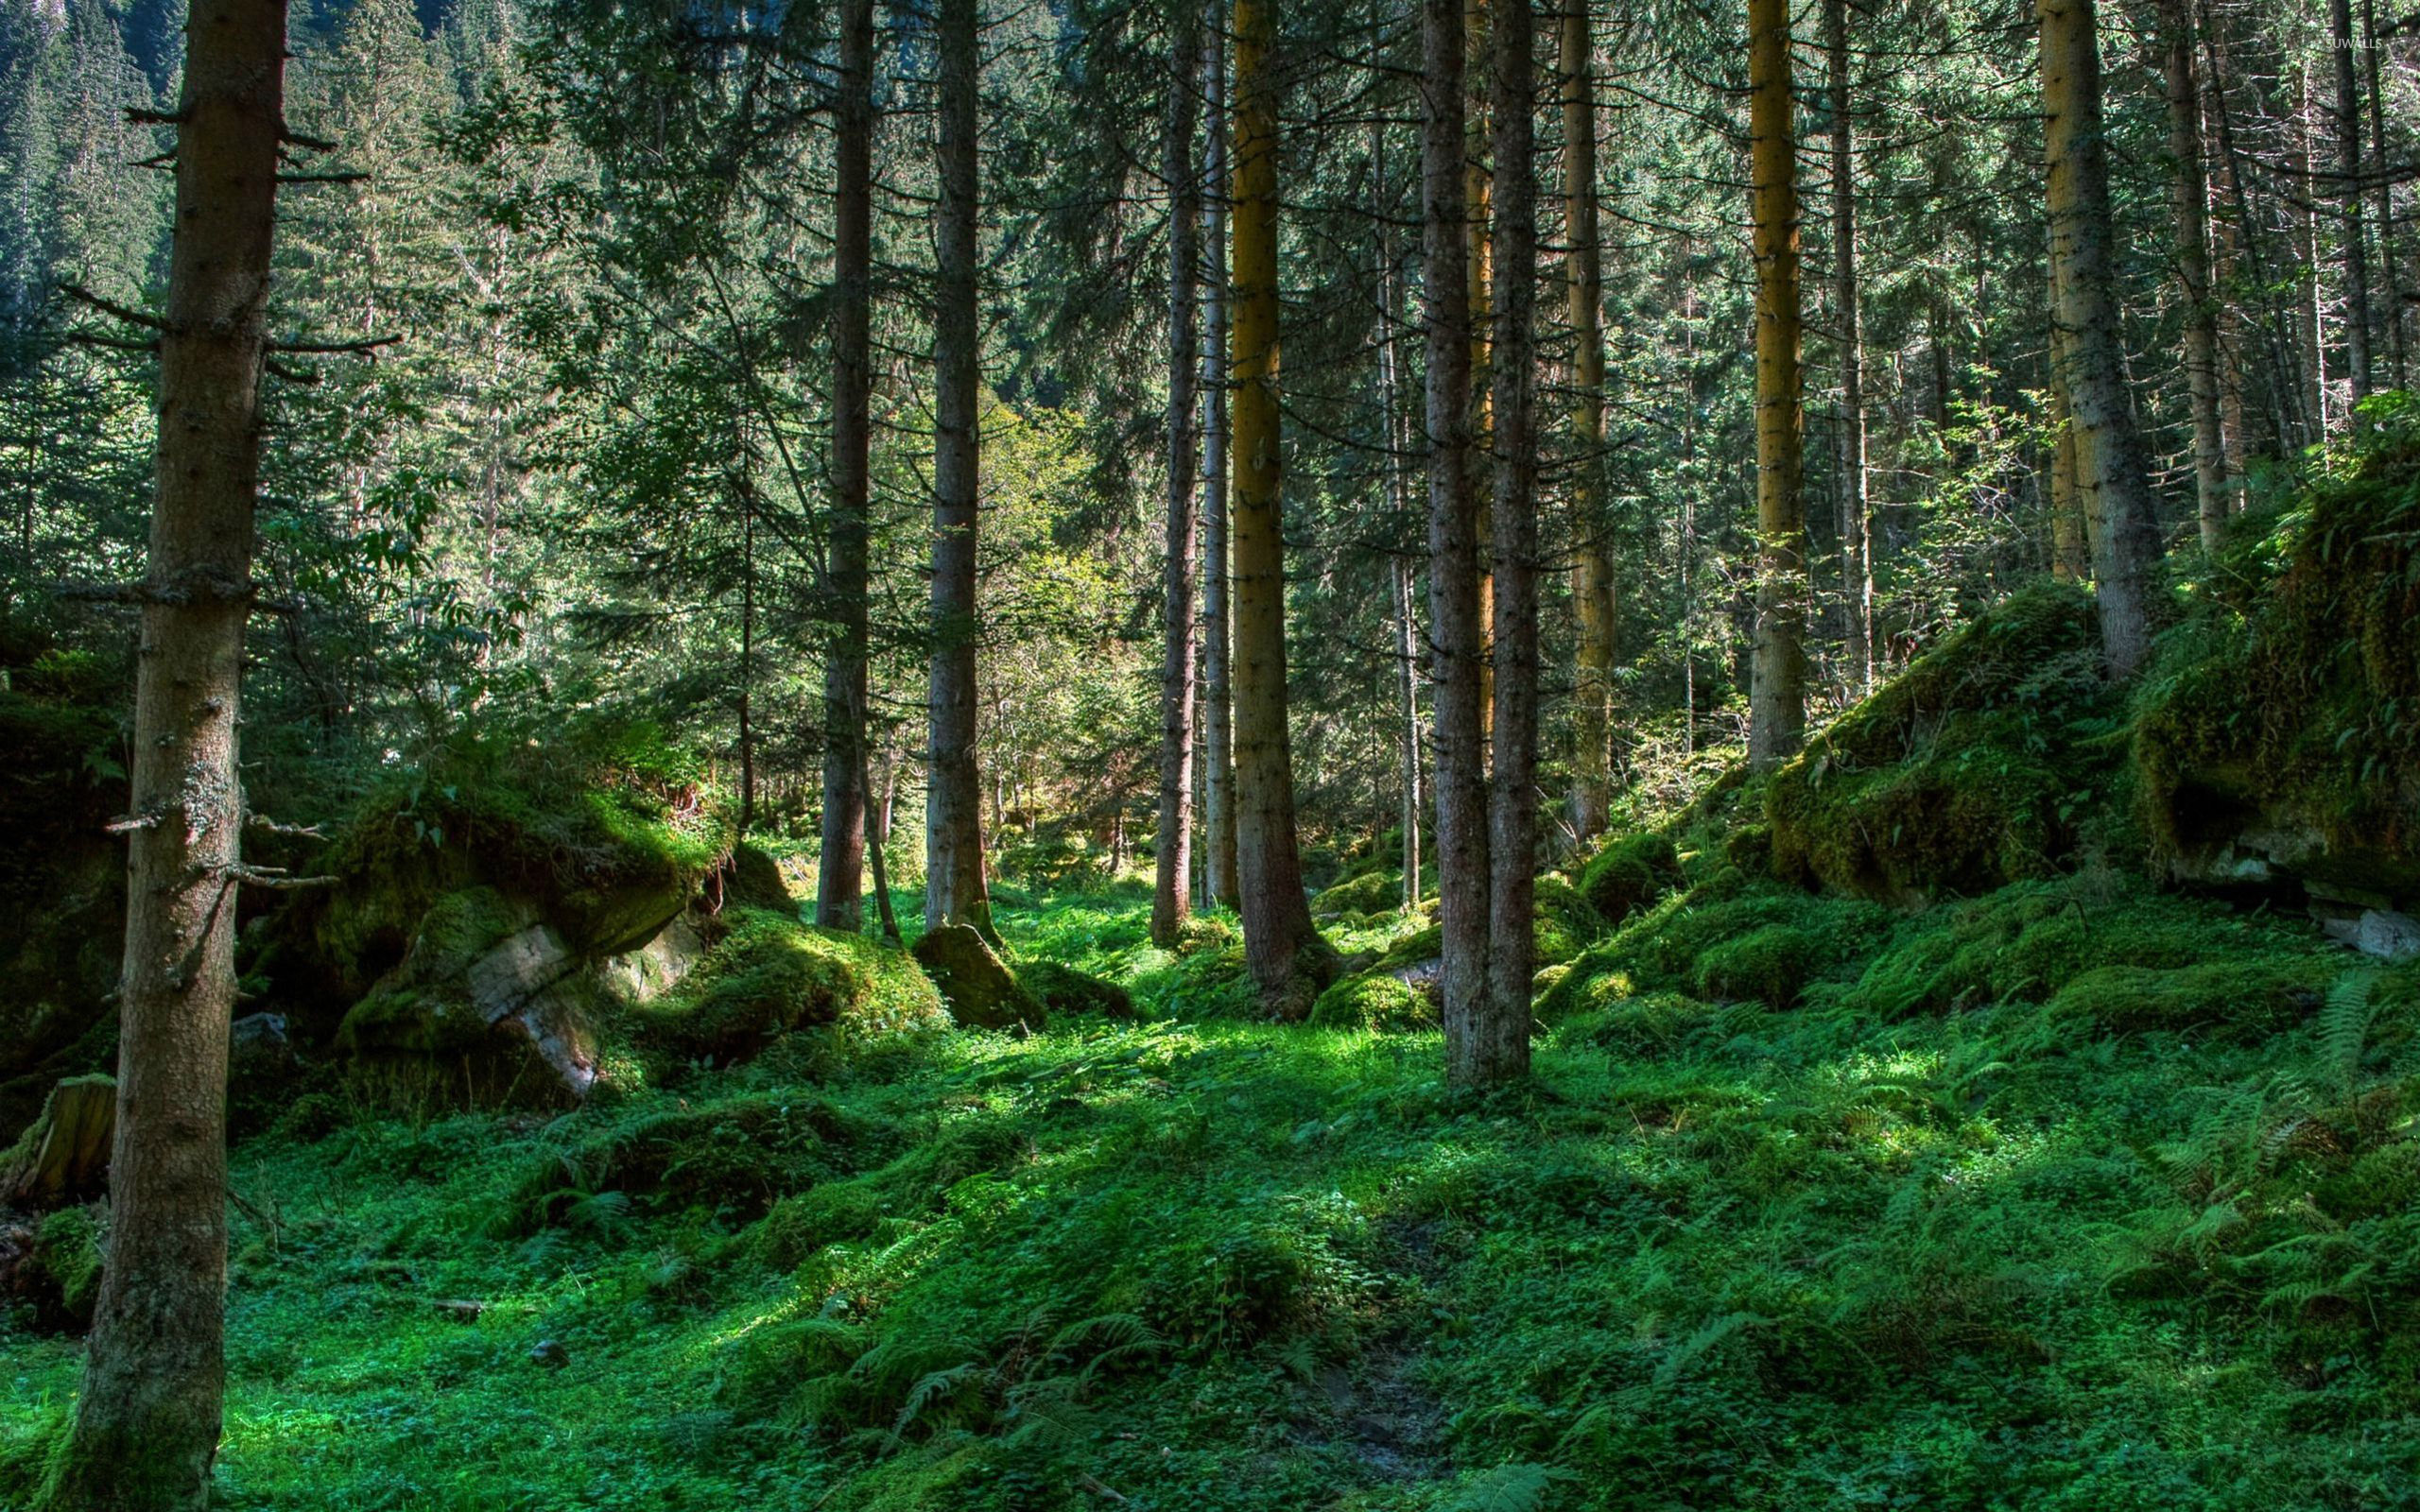 Spring forest wallpaper nature wallpapers 27222 for Forest wallpaper